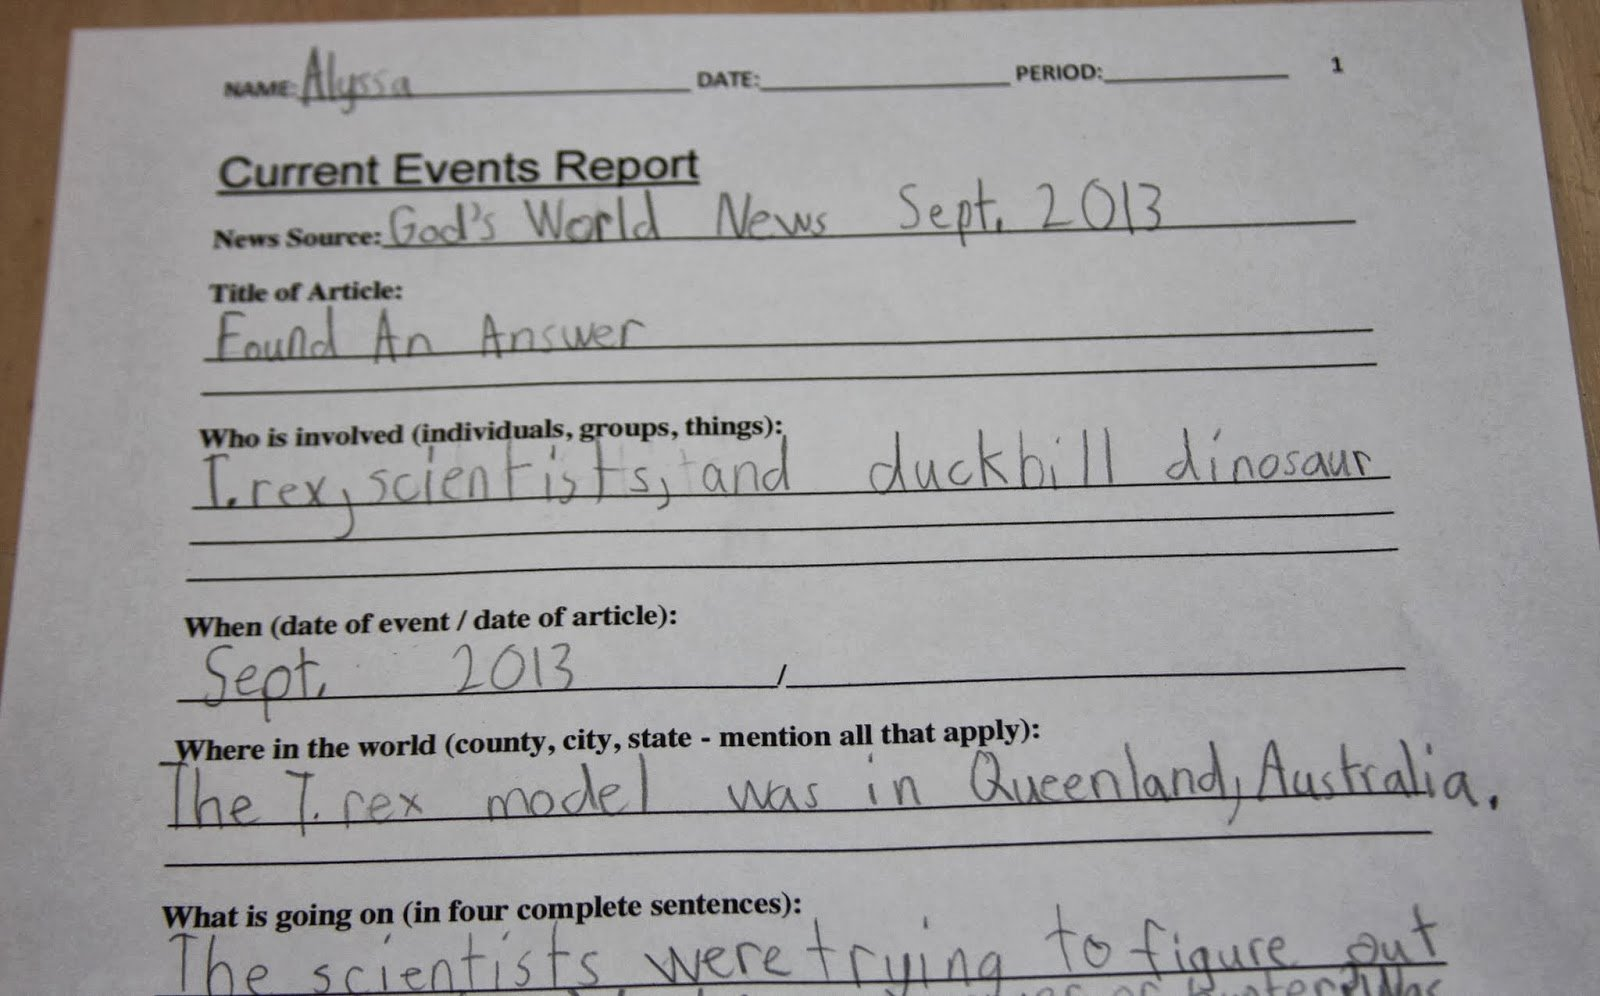 Current event Paper format Elegant A Learning Journey Schoolhouse Review God S World News